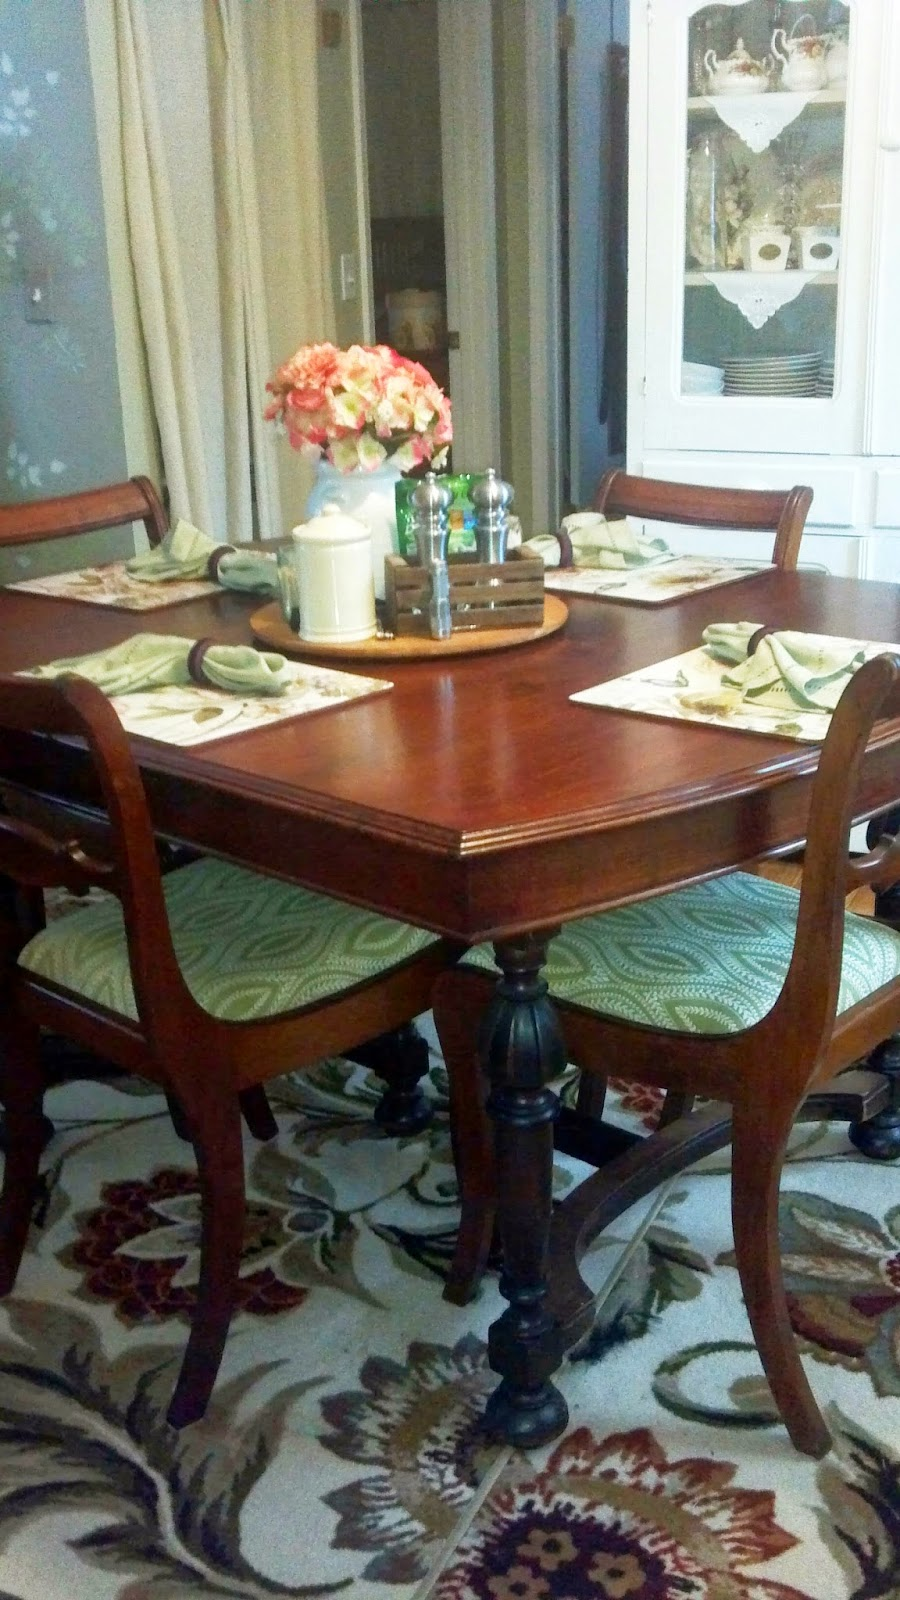 After: Dining table and chairs